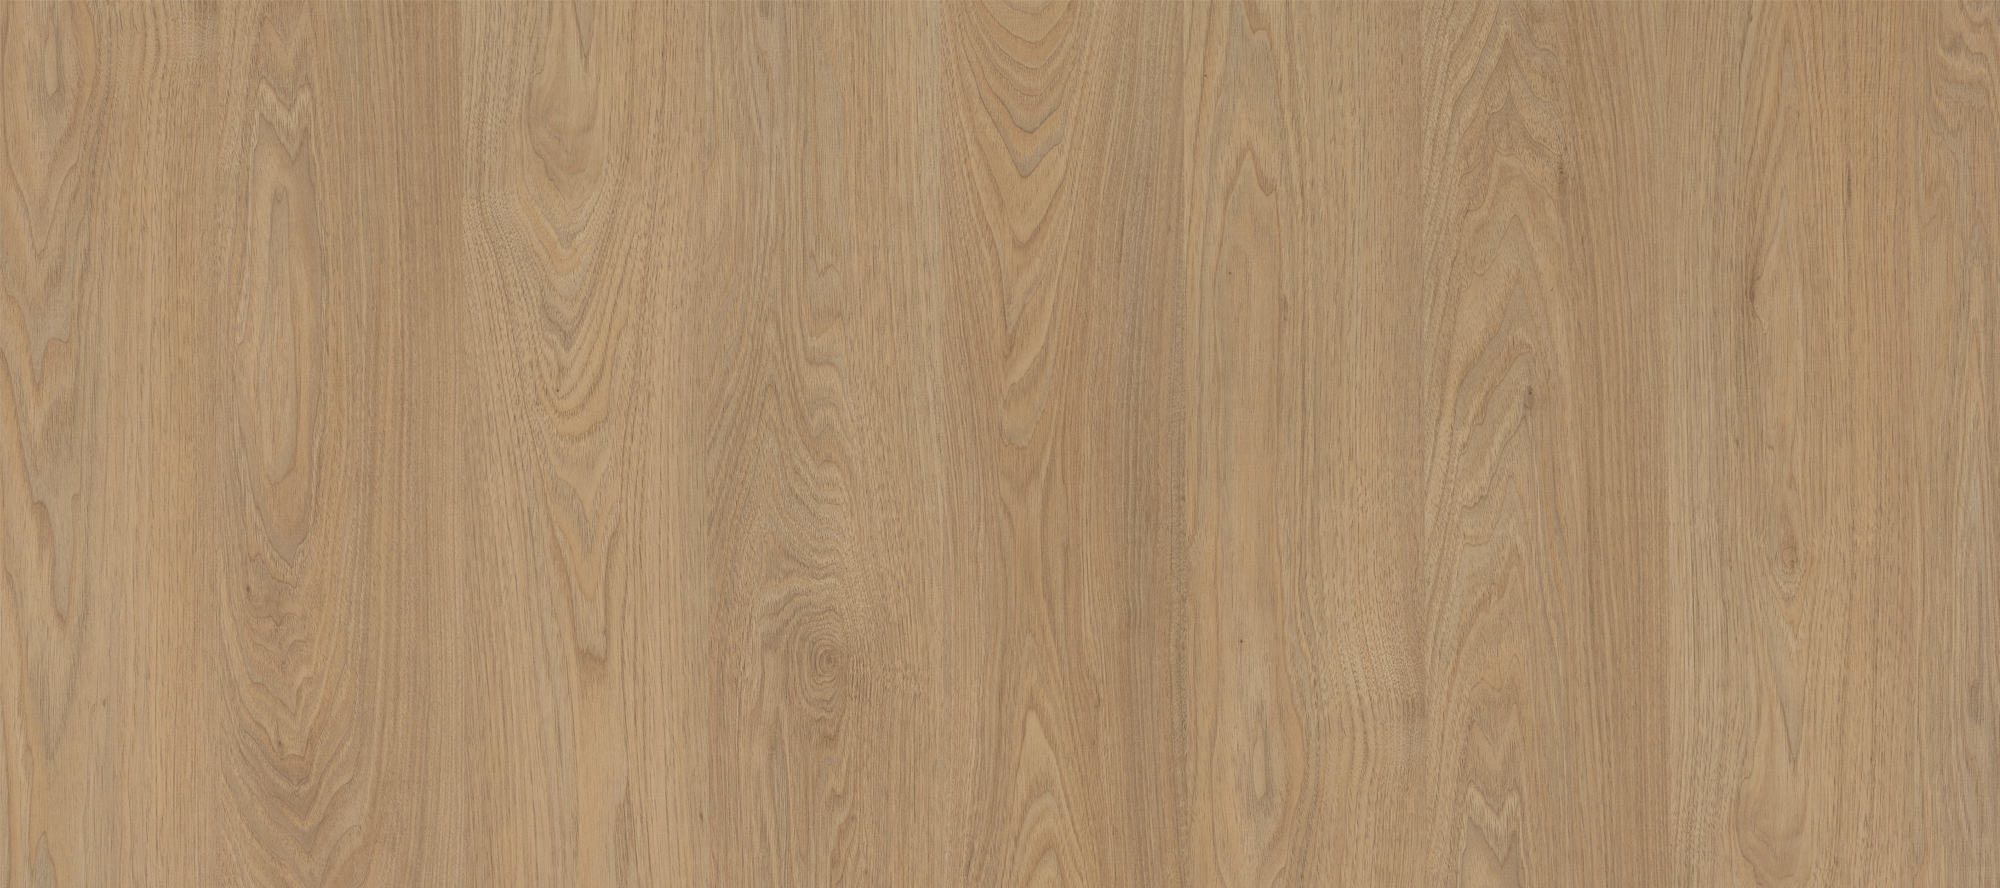 Era Laminates Collection with Walnut Laminate-Sundek International